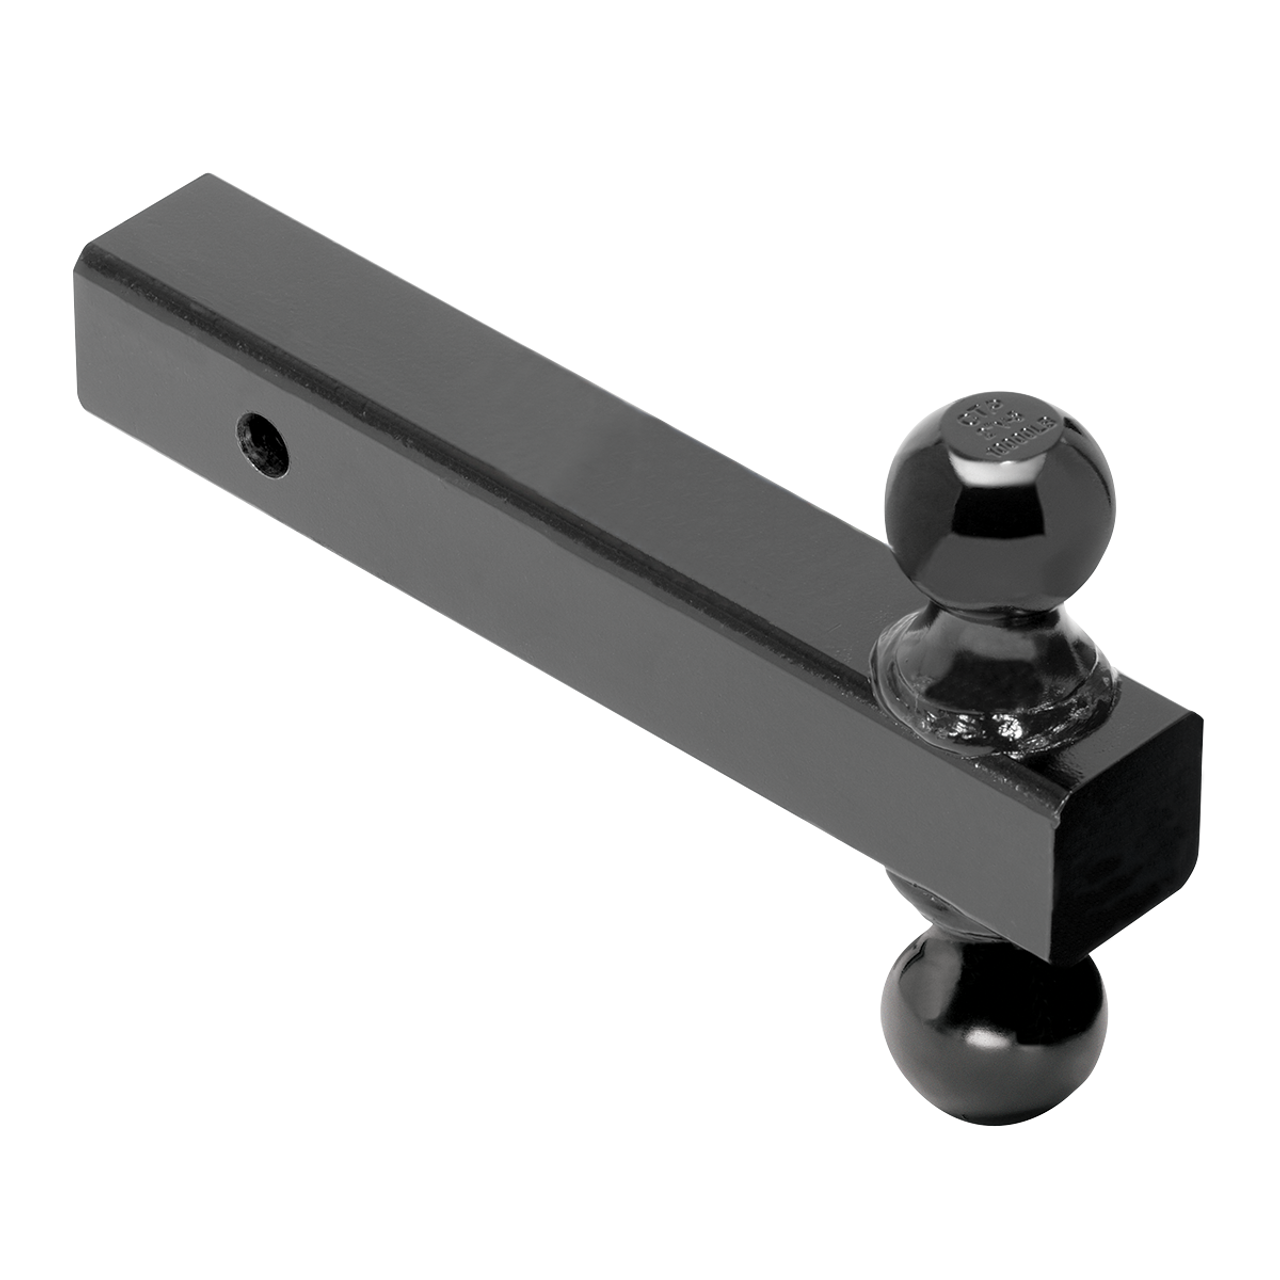 """80796 --- Ball Mount, Combination 2"""" and 2-5/16"""" Welded Hitch Balls, 16,000 lb Maximum Capacity"""